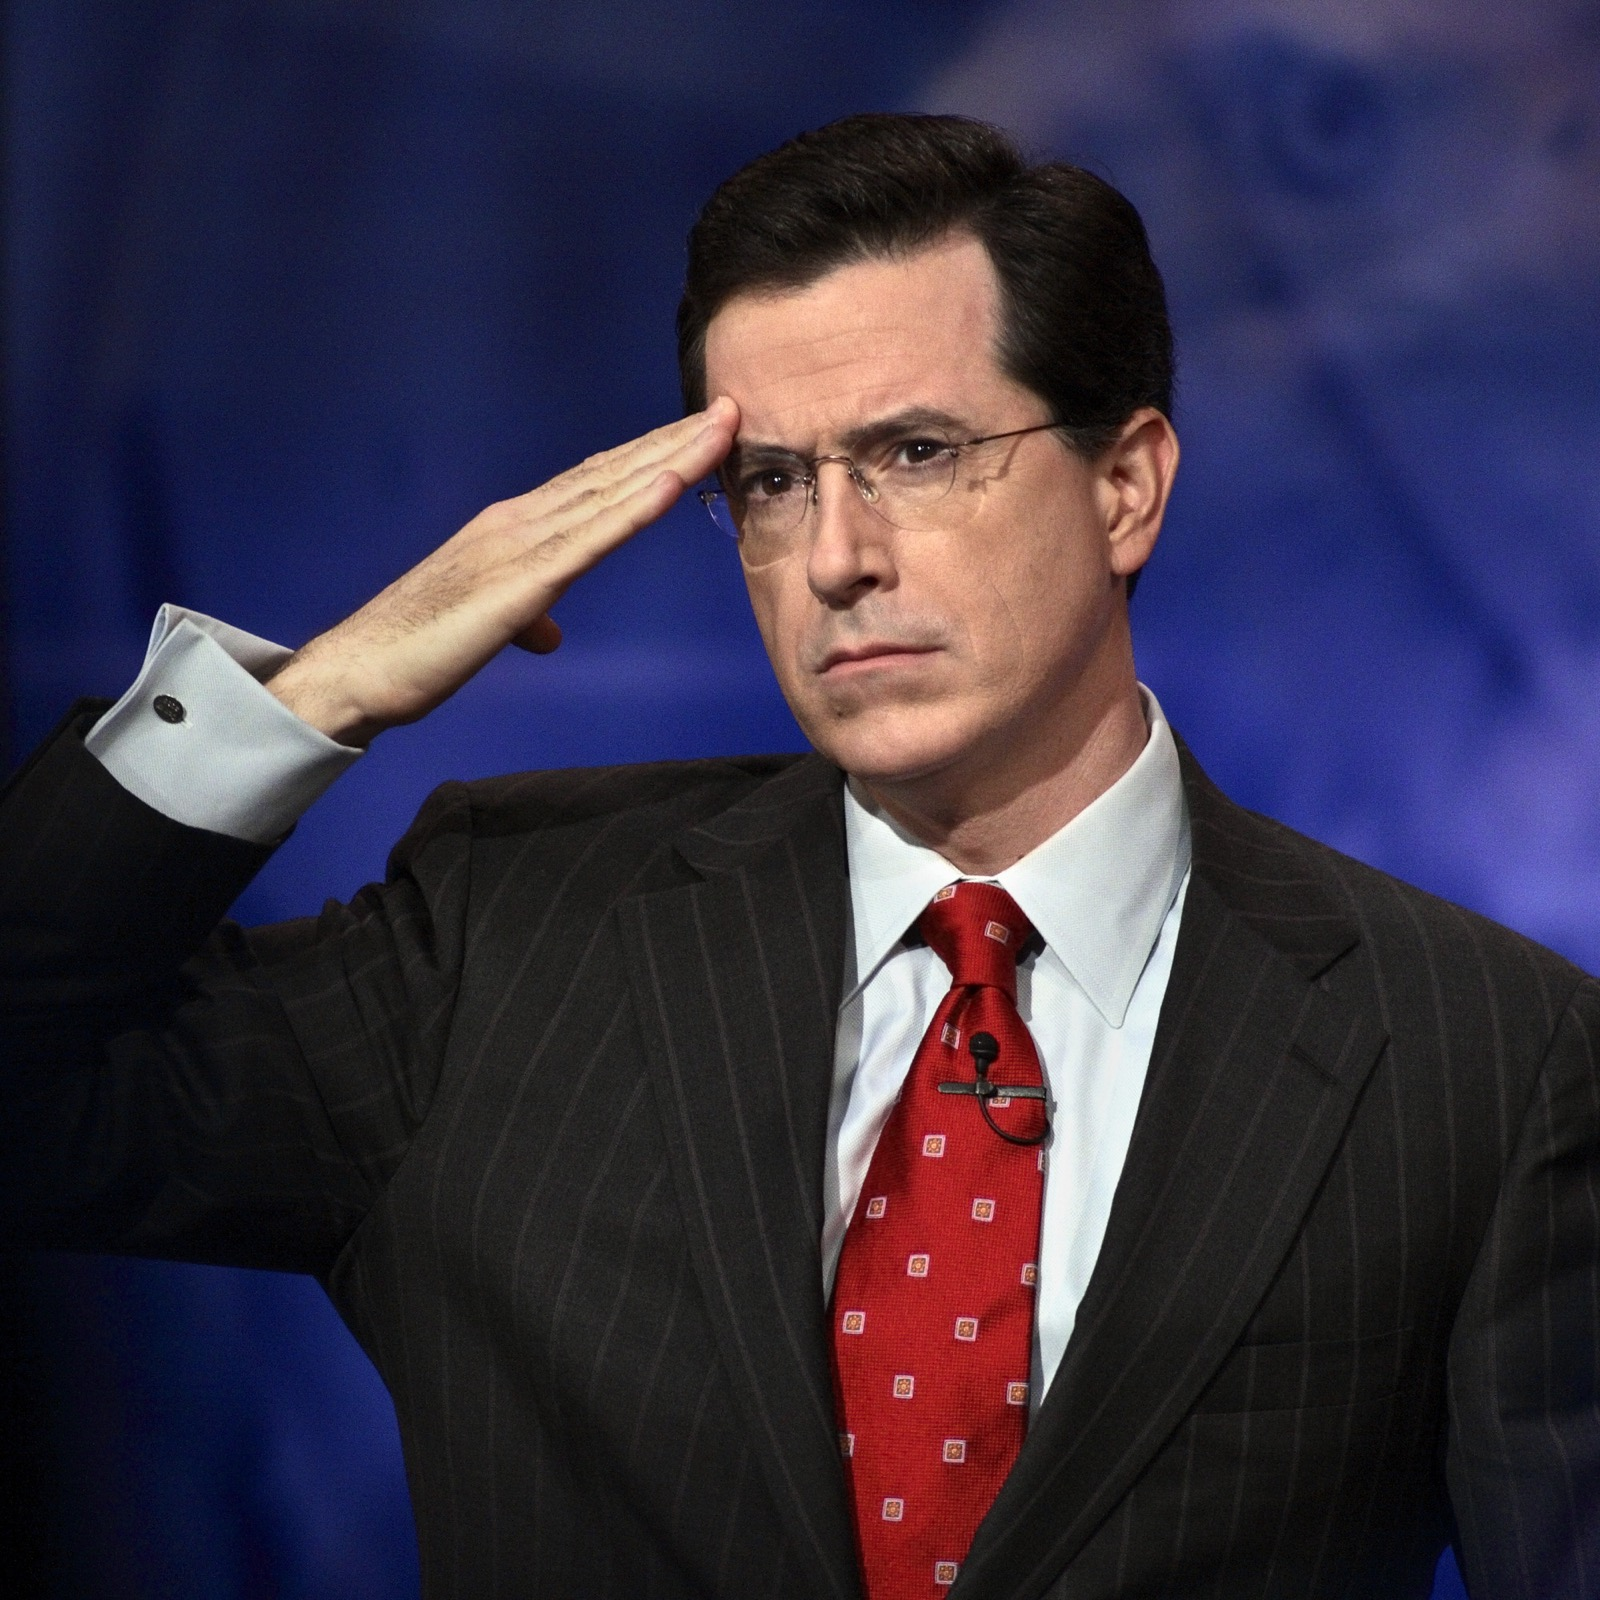 The Colbert Report Signs Off: Pictures